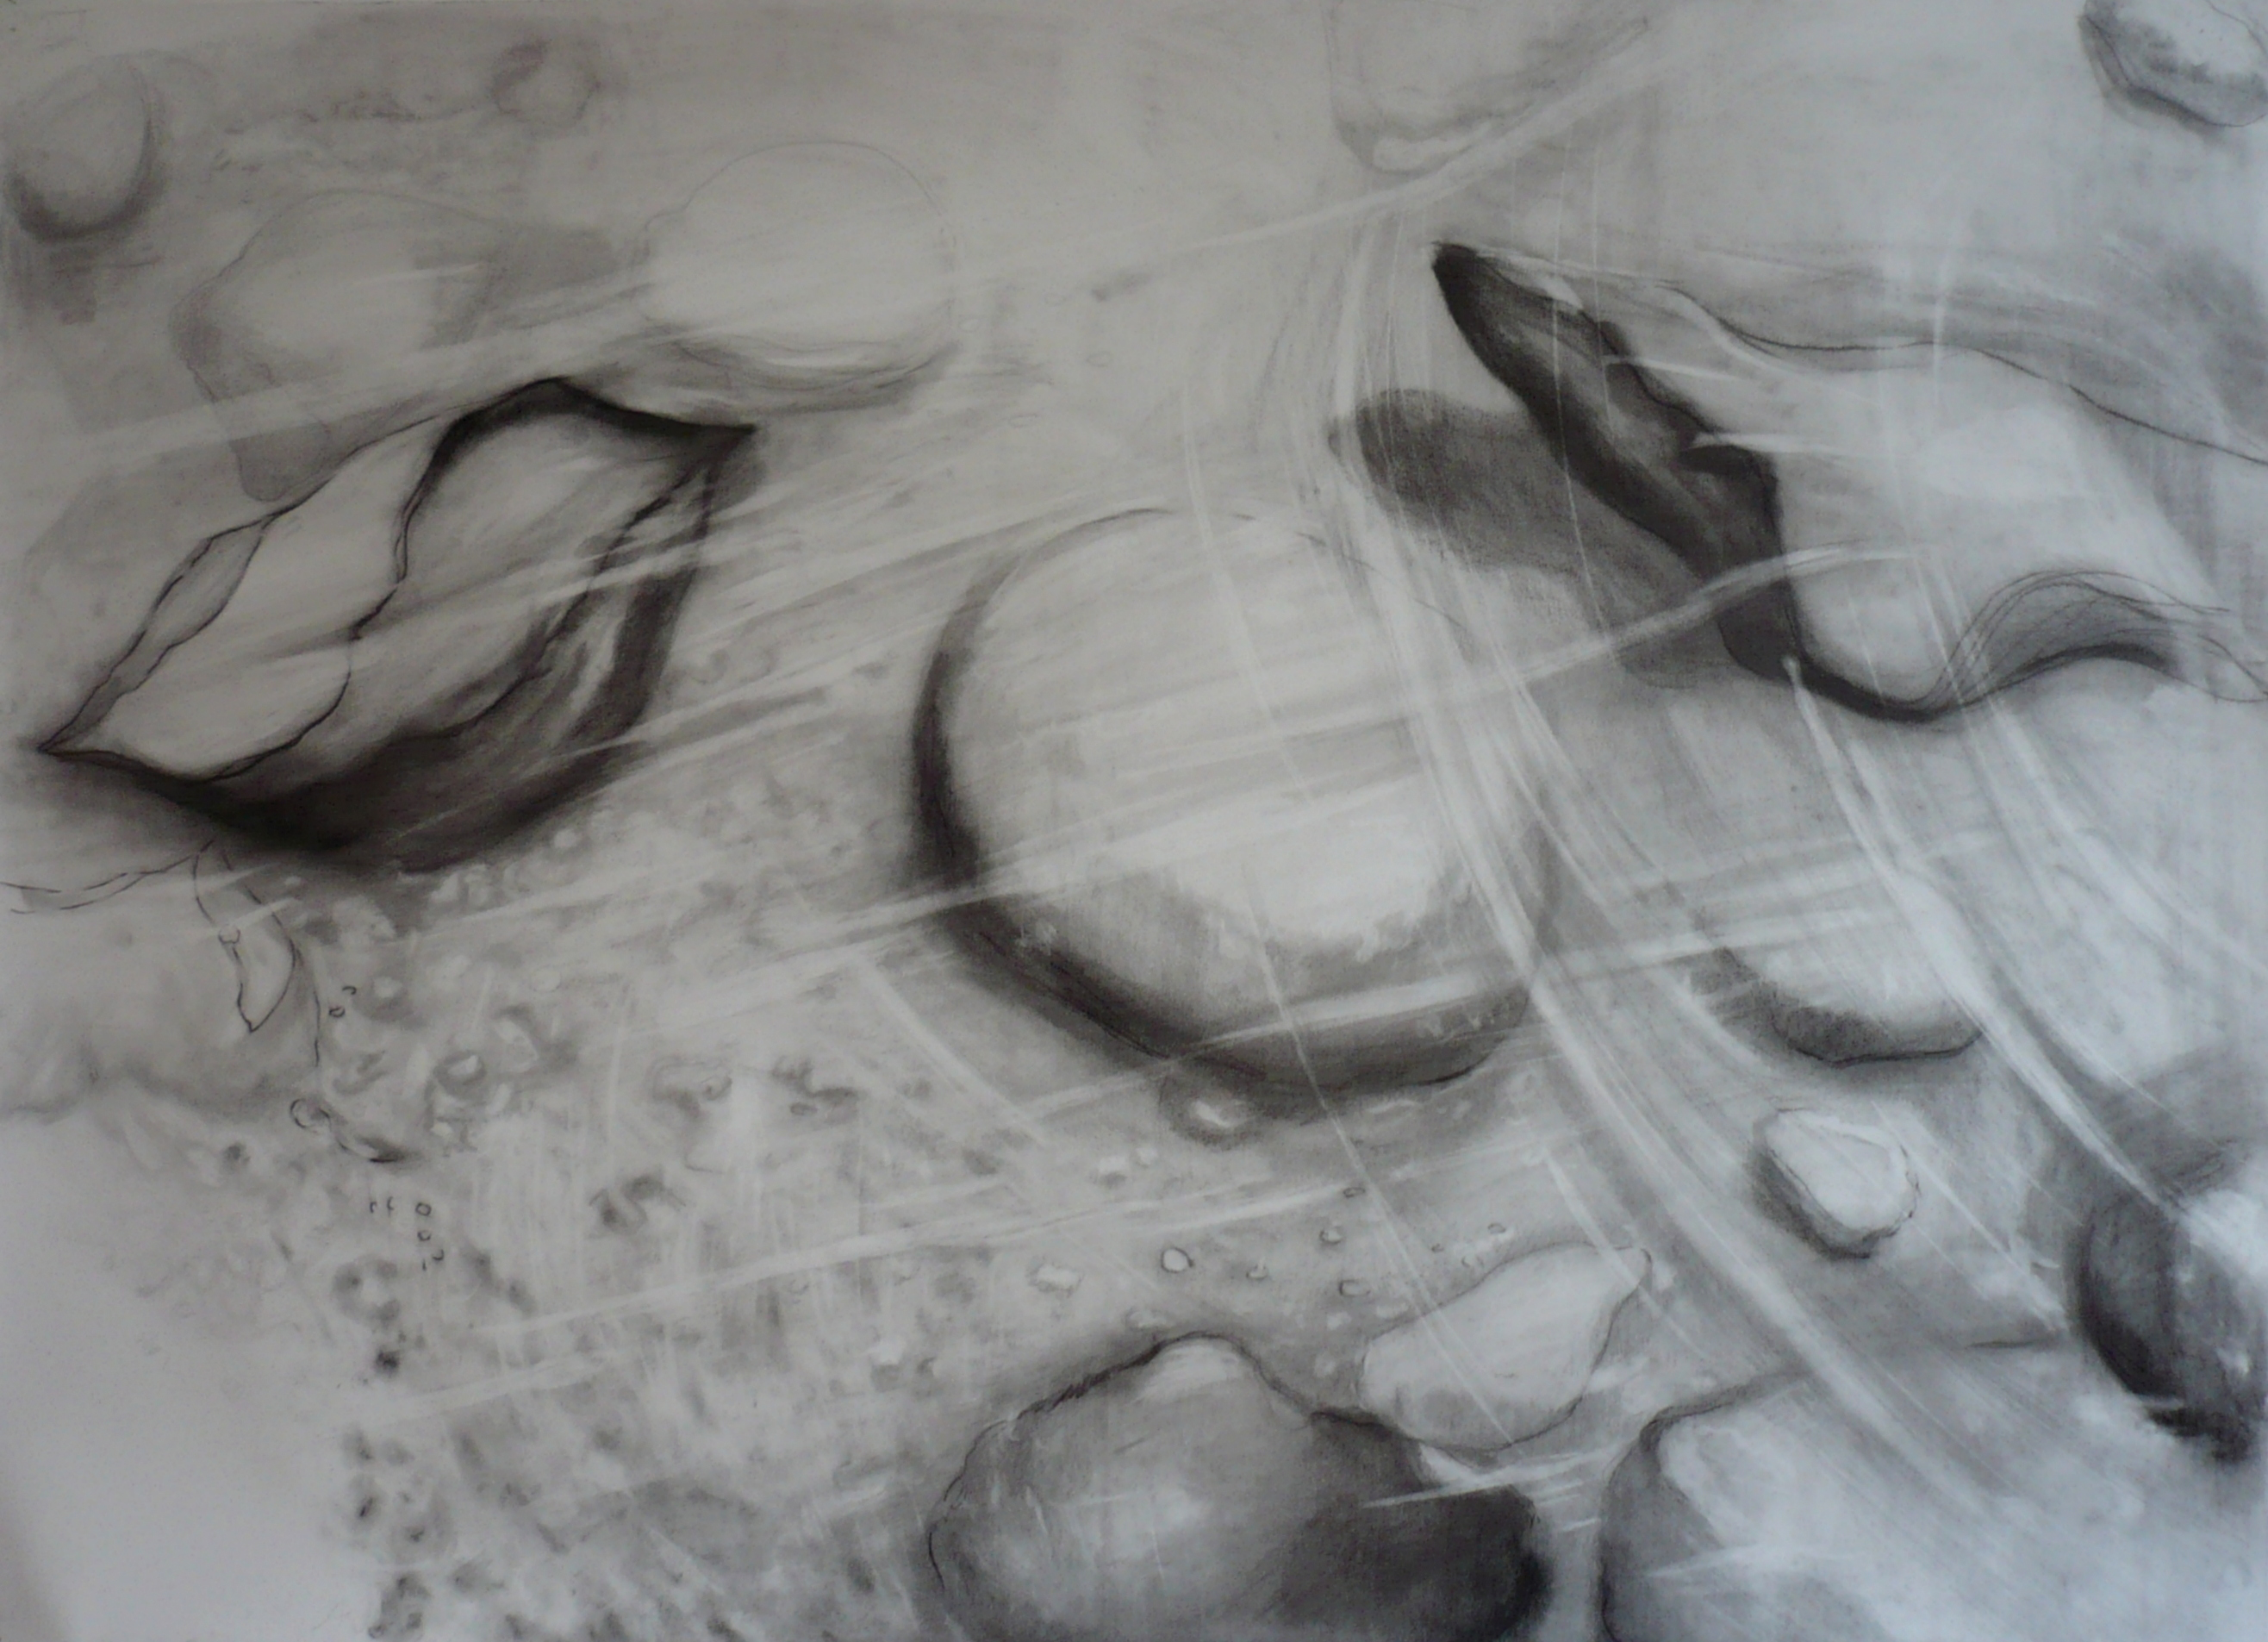 Carita Savolainen, Airscape on Water (Kuohu), 110cm x 150cm, pencil and charcoal on paper, veil, 2012